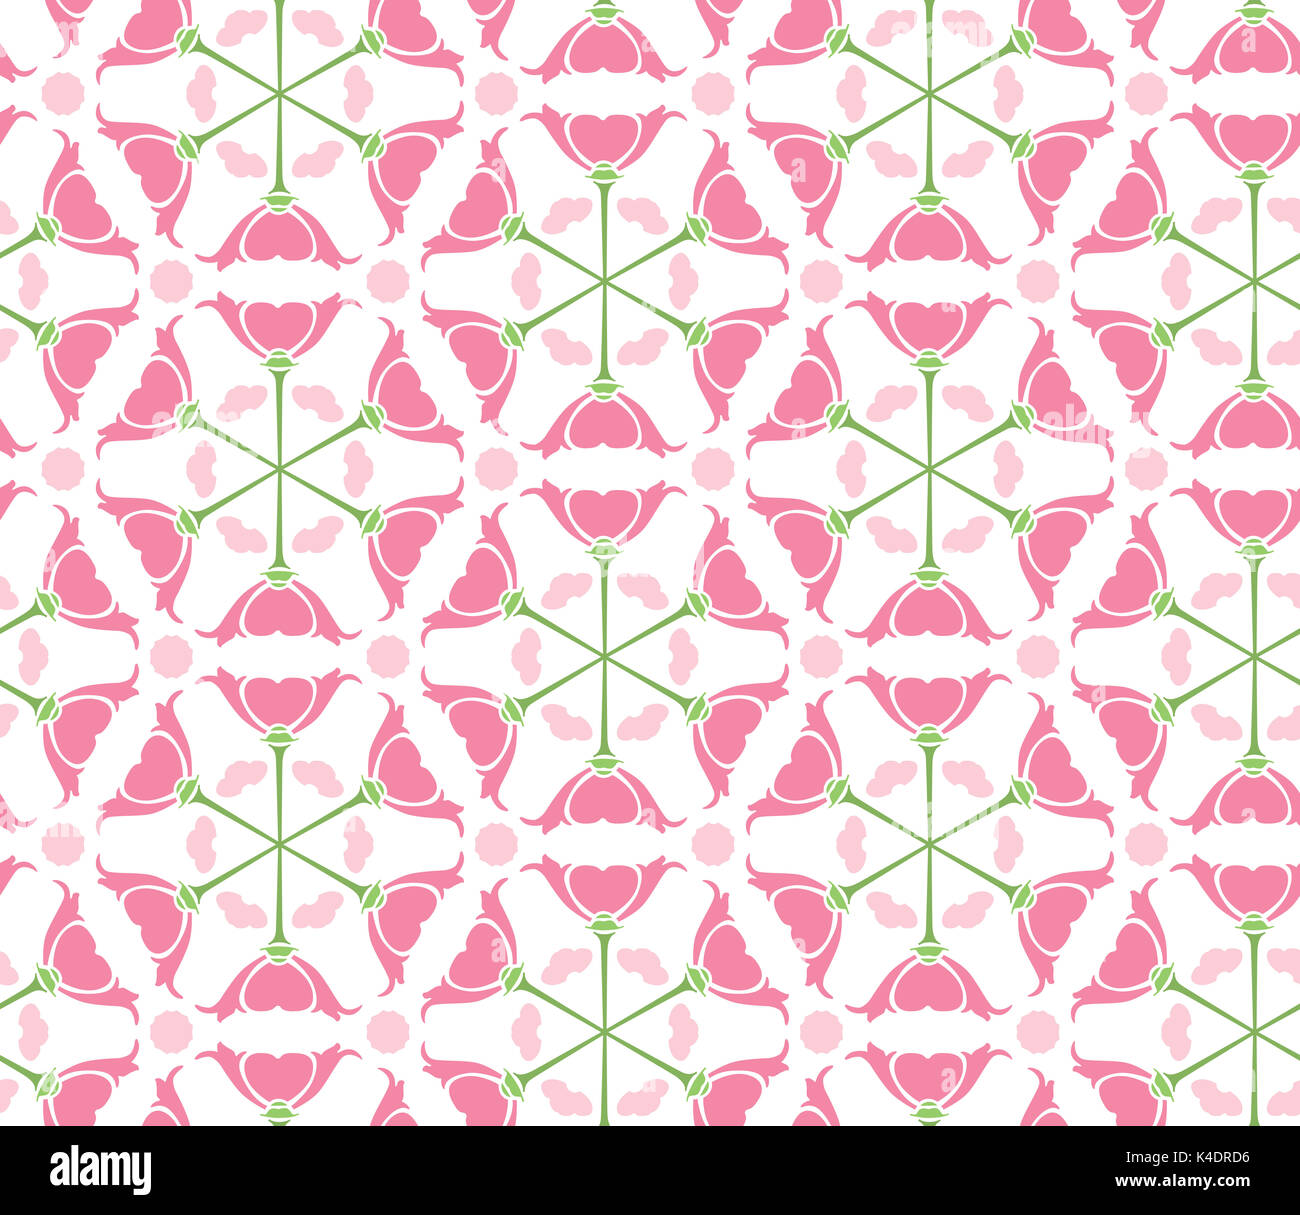 Seamless pattern made of pink illustrated stylised flowers - Stock Image